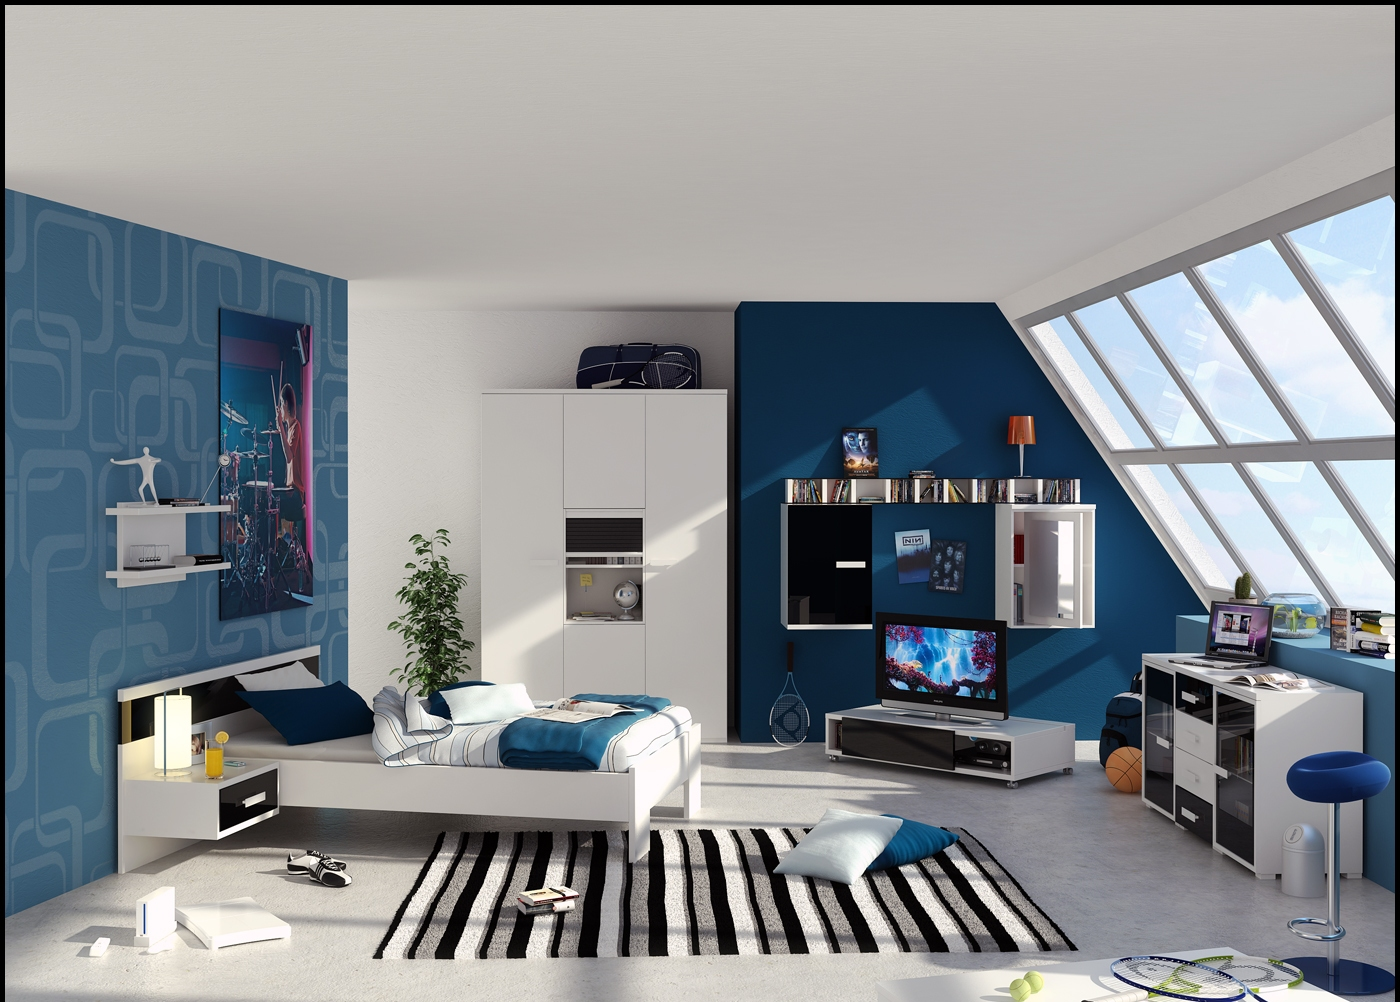 Blue-and-white-interior-for-boys-room-with-slopping-window.jpg